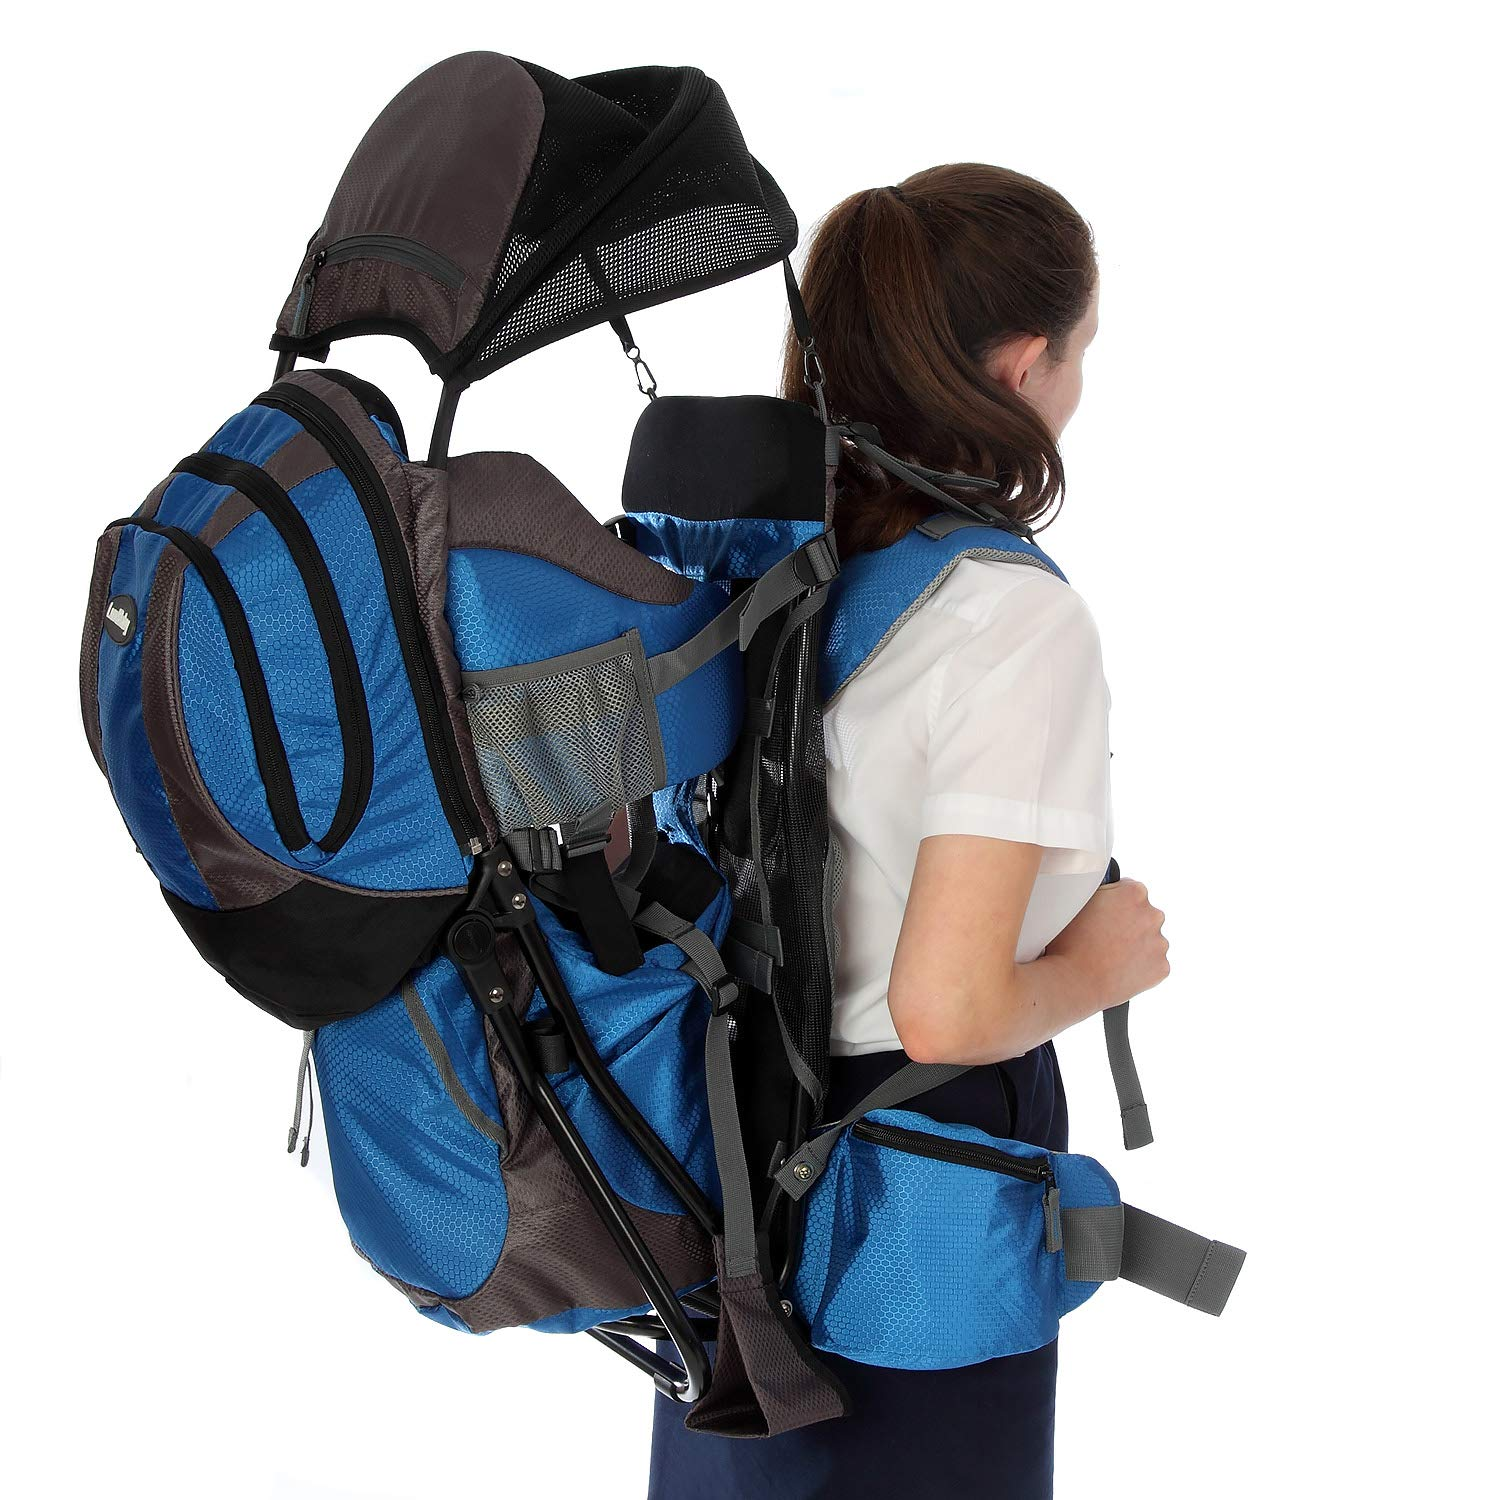 Best Baby Hiking Backpacks Reviews | Definitive Buying Guide 13